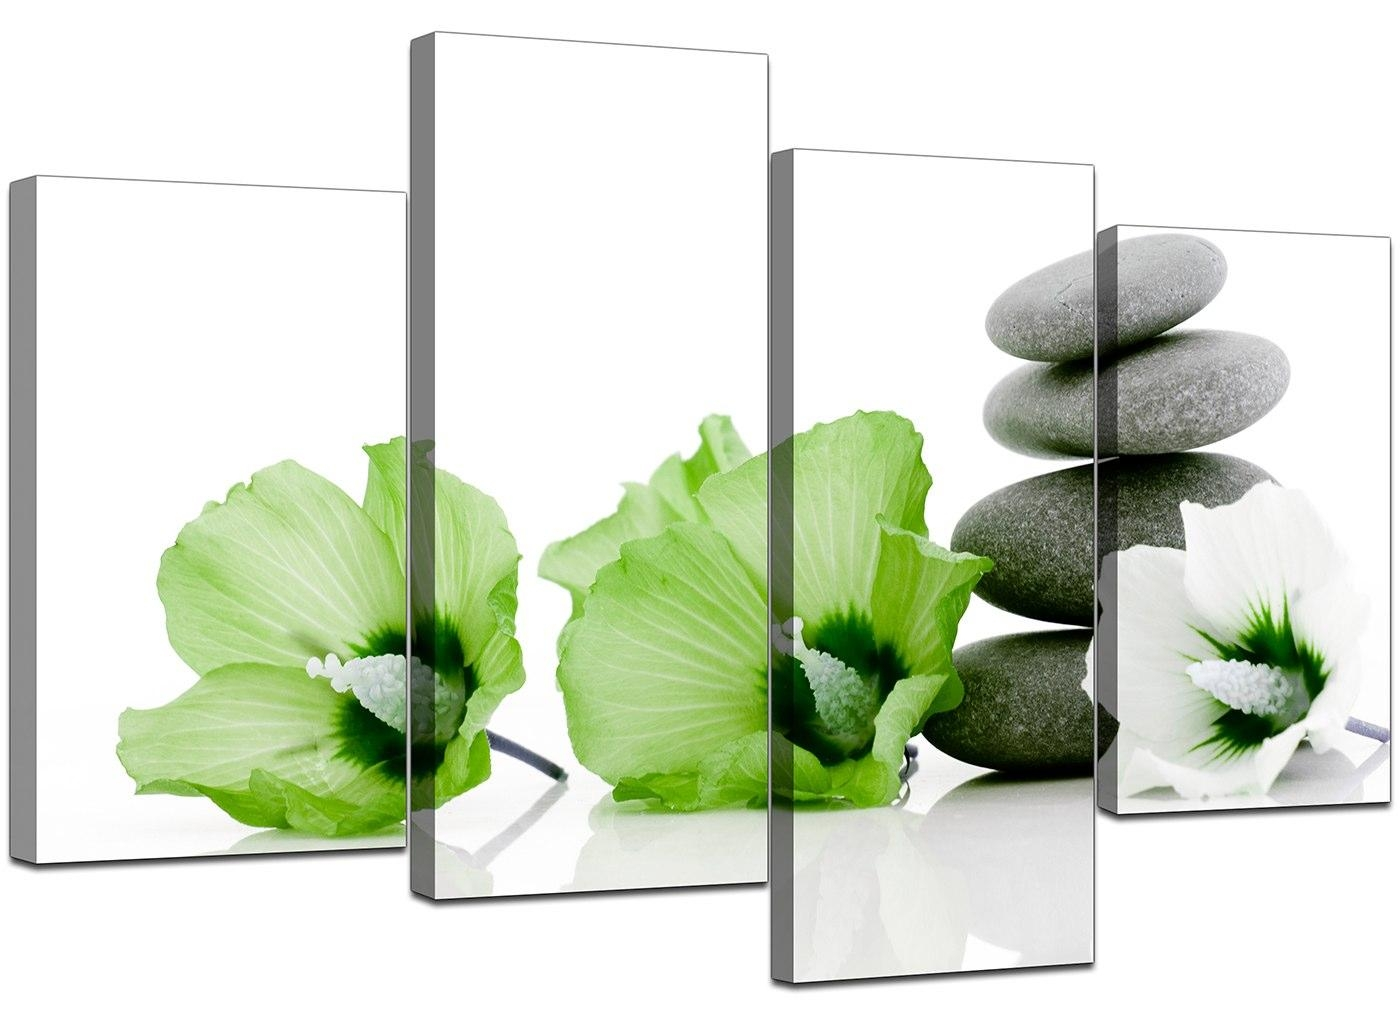 Appealing Artificial Green Wall Panels Wall Art Excellent Kitchen Intended For Lime Green Metal Wall Art (View 5 of 20)